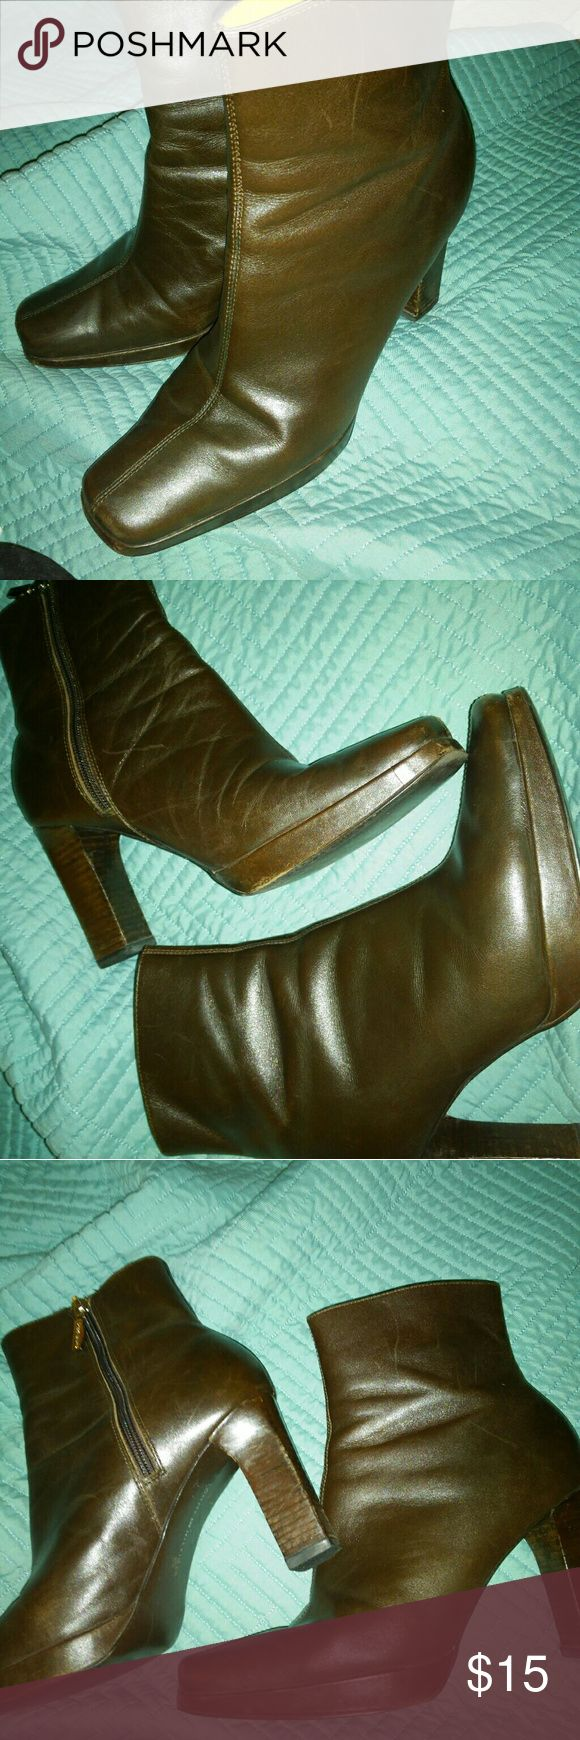 "TOMMY HILFIGER leather ankle boots Nice TOMMY HILFIGER boots Brown leather  Nice condition  Measures 8.5"" from top of back to bottom of boot 3"" heels Size 8.5 Tommy Hilfiger Shoes Heeled Boots"